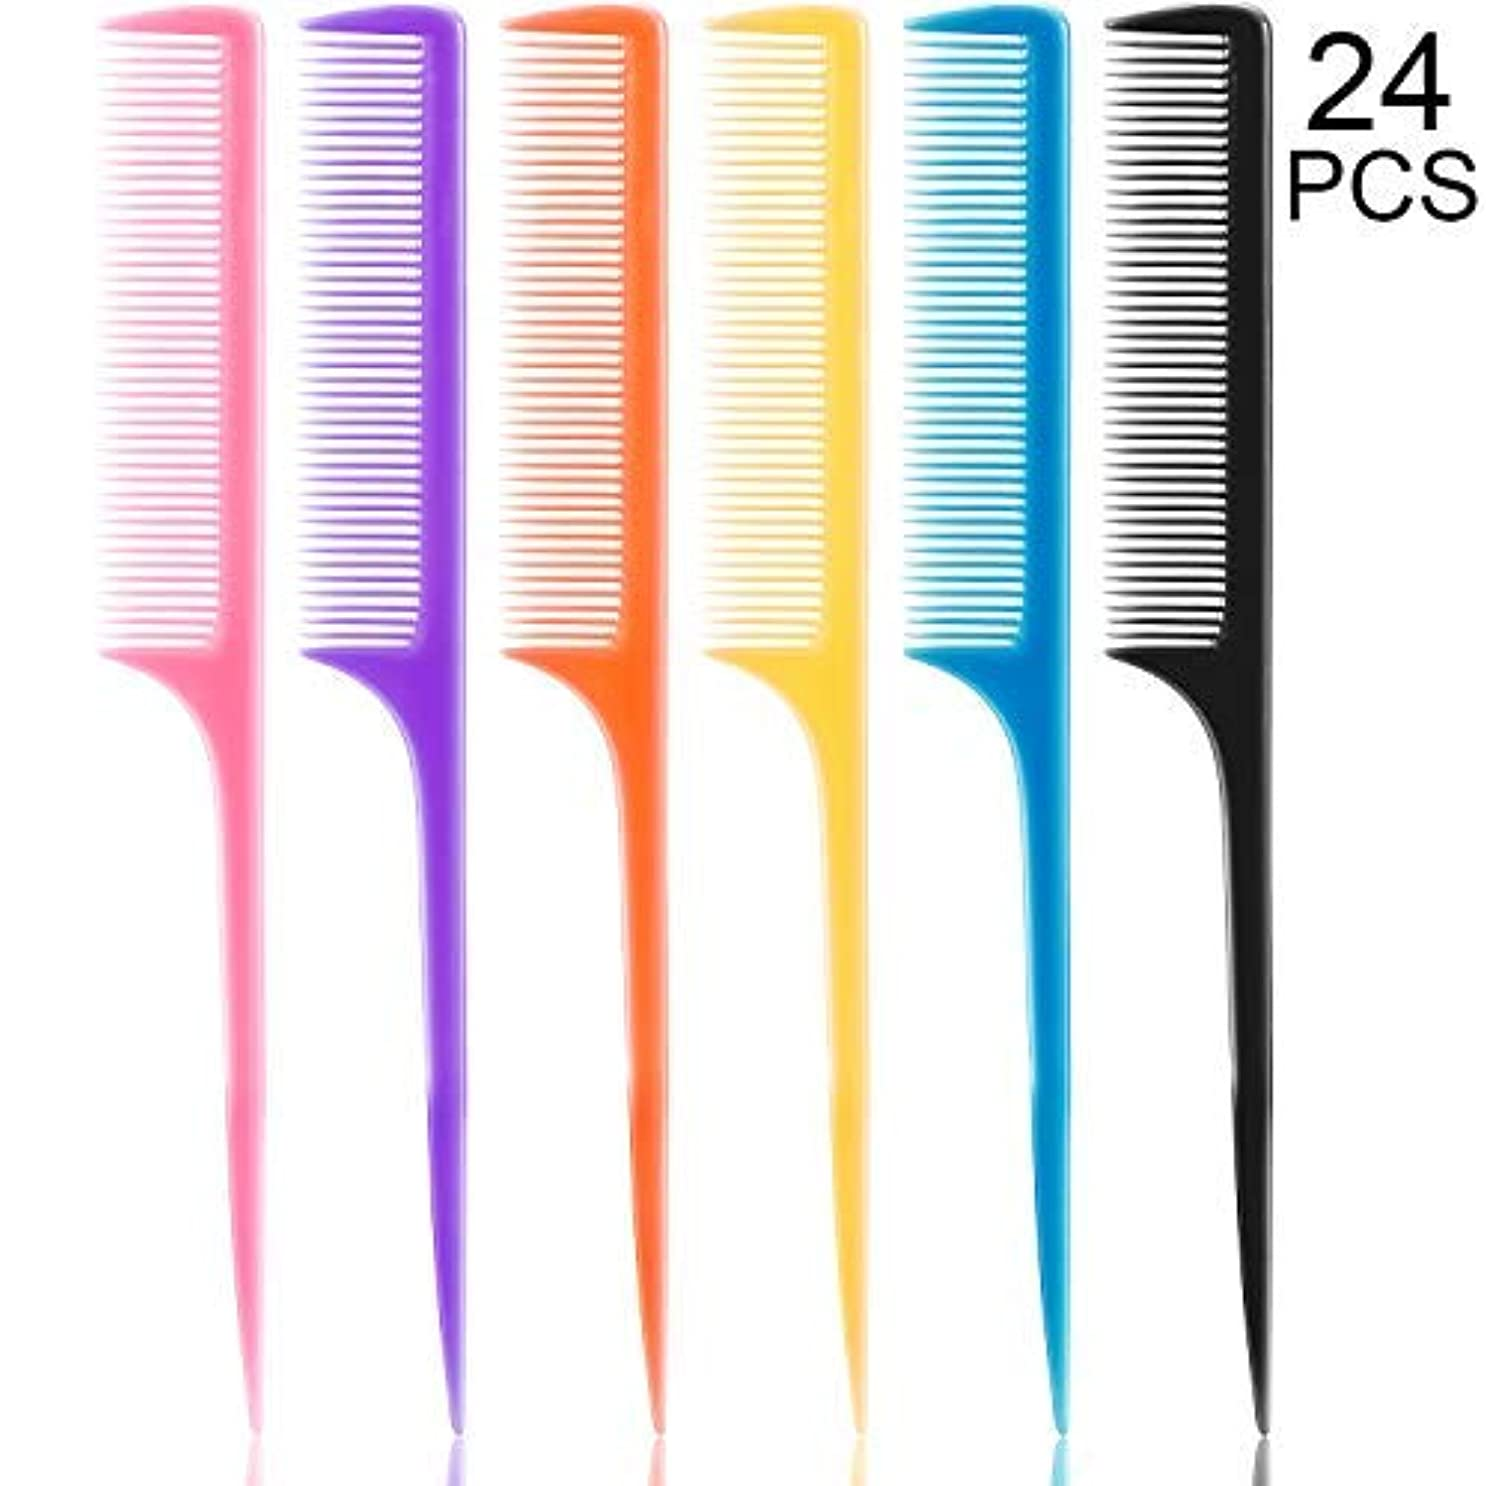 24 Pieces Plastic Rat Tail Combs 8.5 Inch Fine-tooth Hair Combs Pin Tail Hair Styling Combs with Thin and Long...